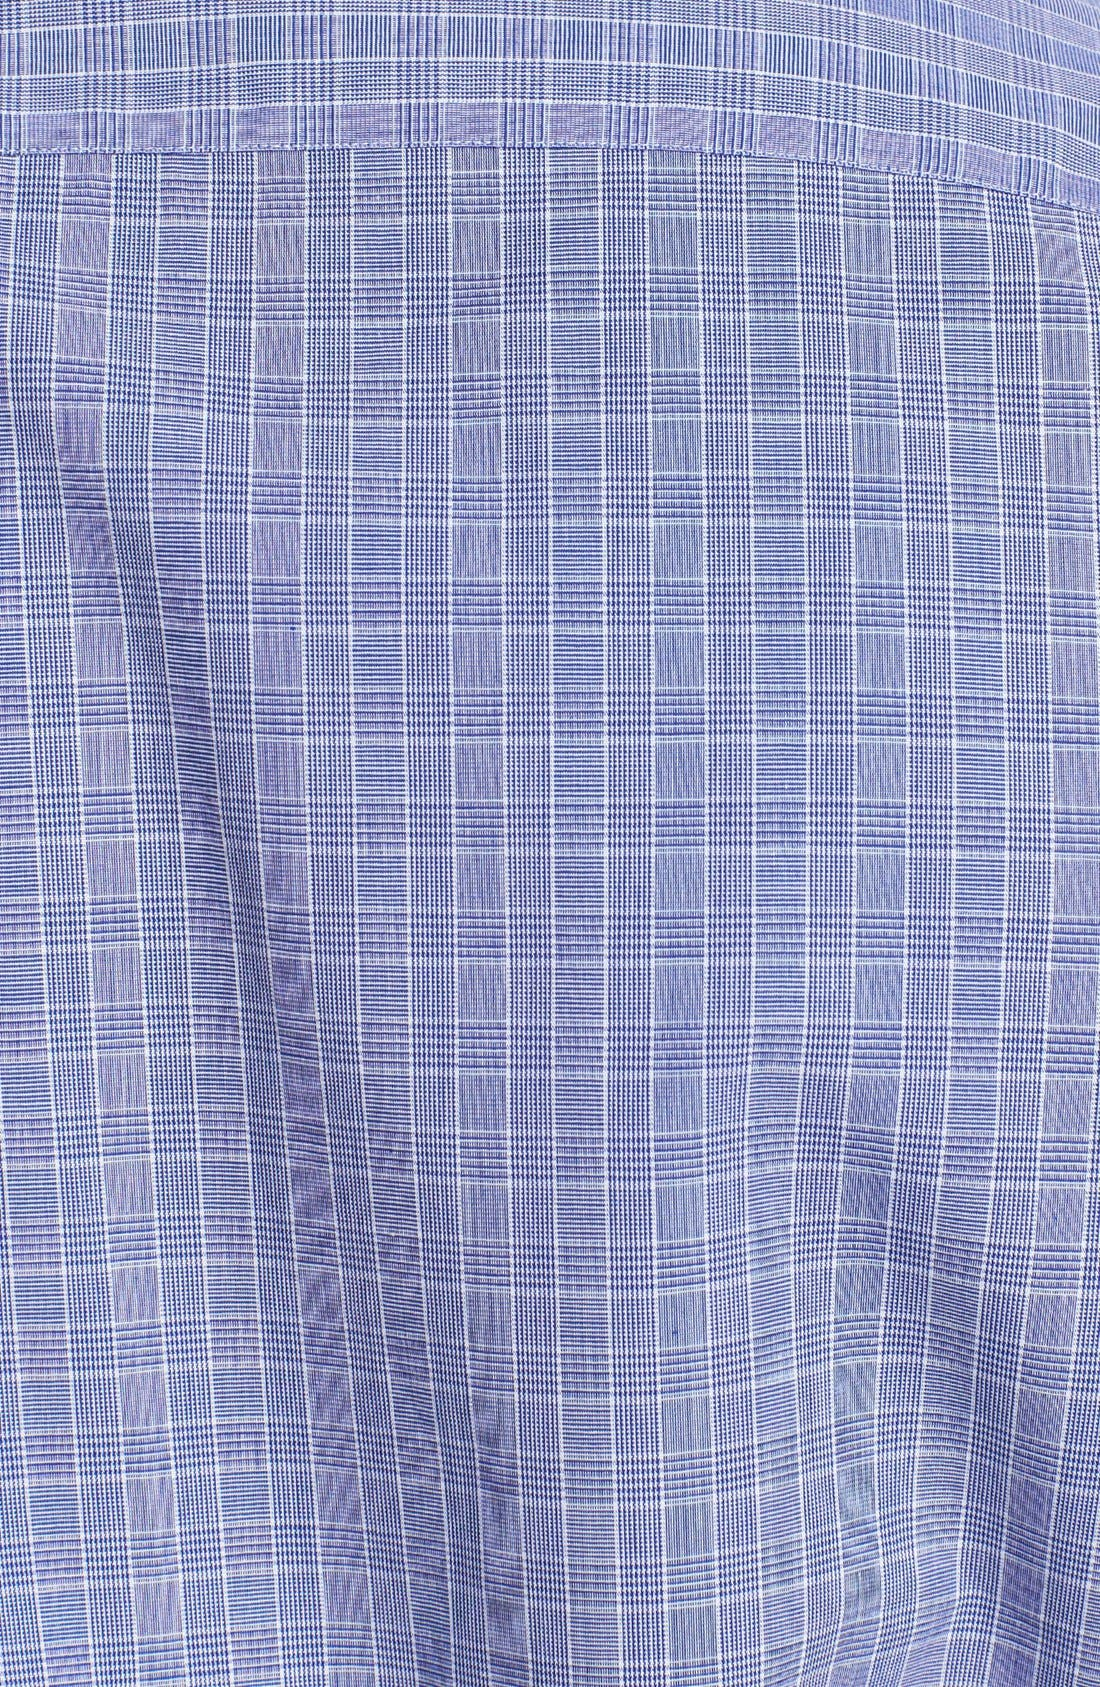 Alternate Image 3  - Z Zegna Slim Fit Glen Plaid Woven Shirt